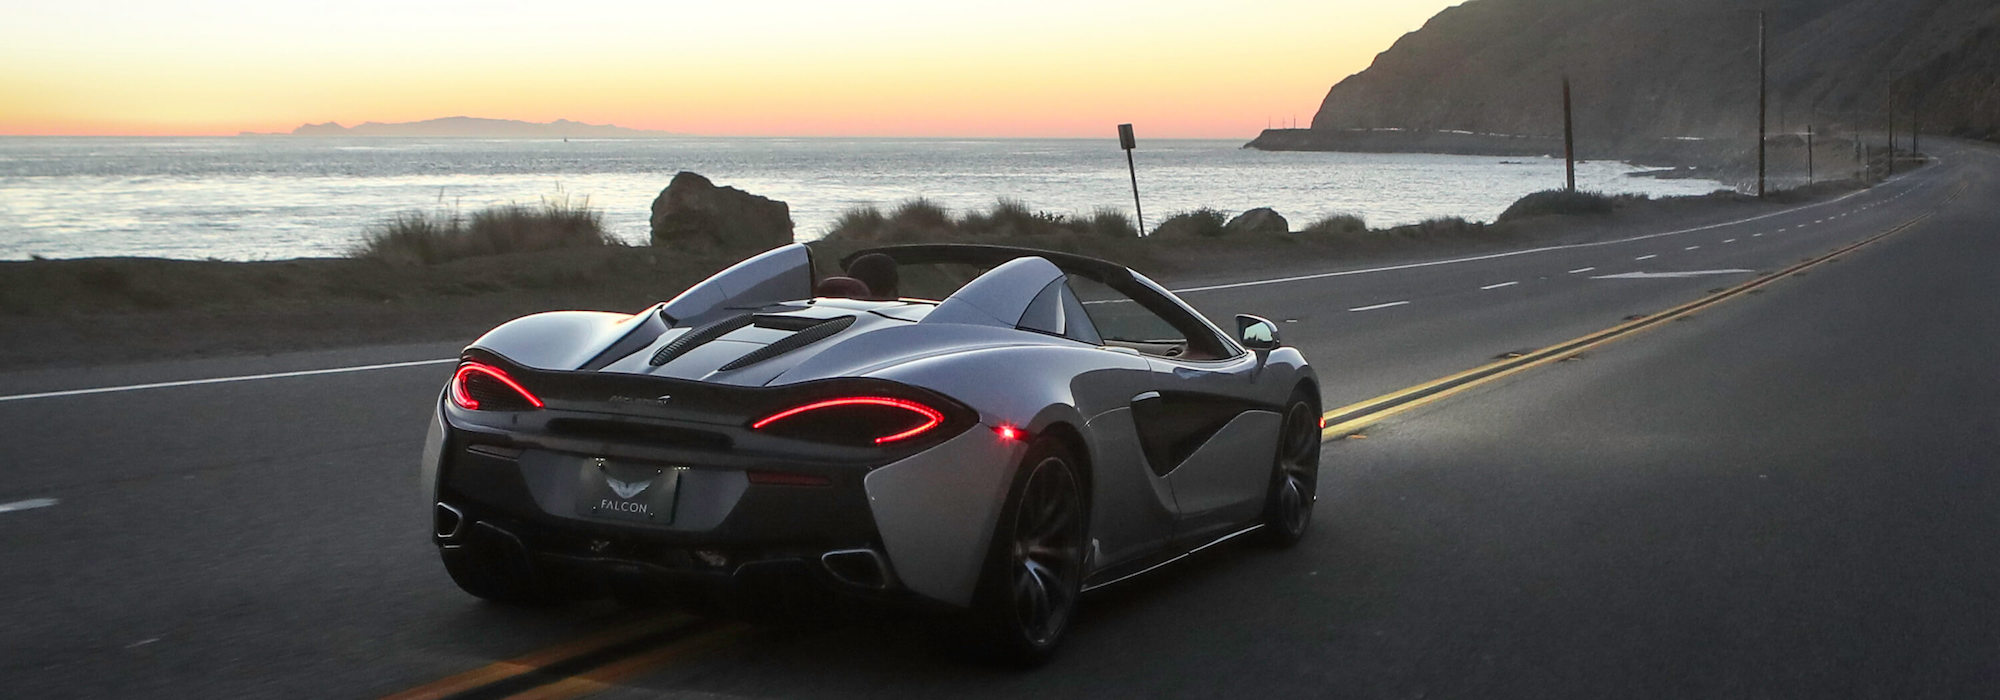 Best Places in LA to Drive a Supercar